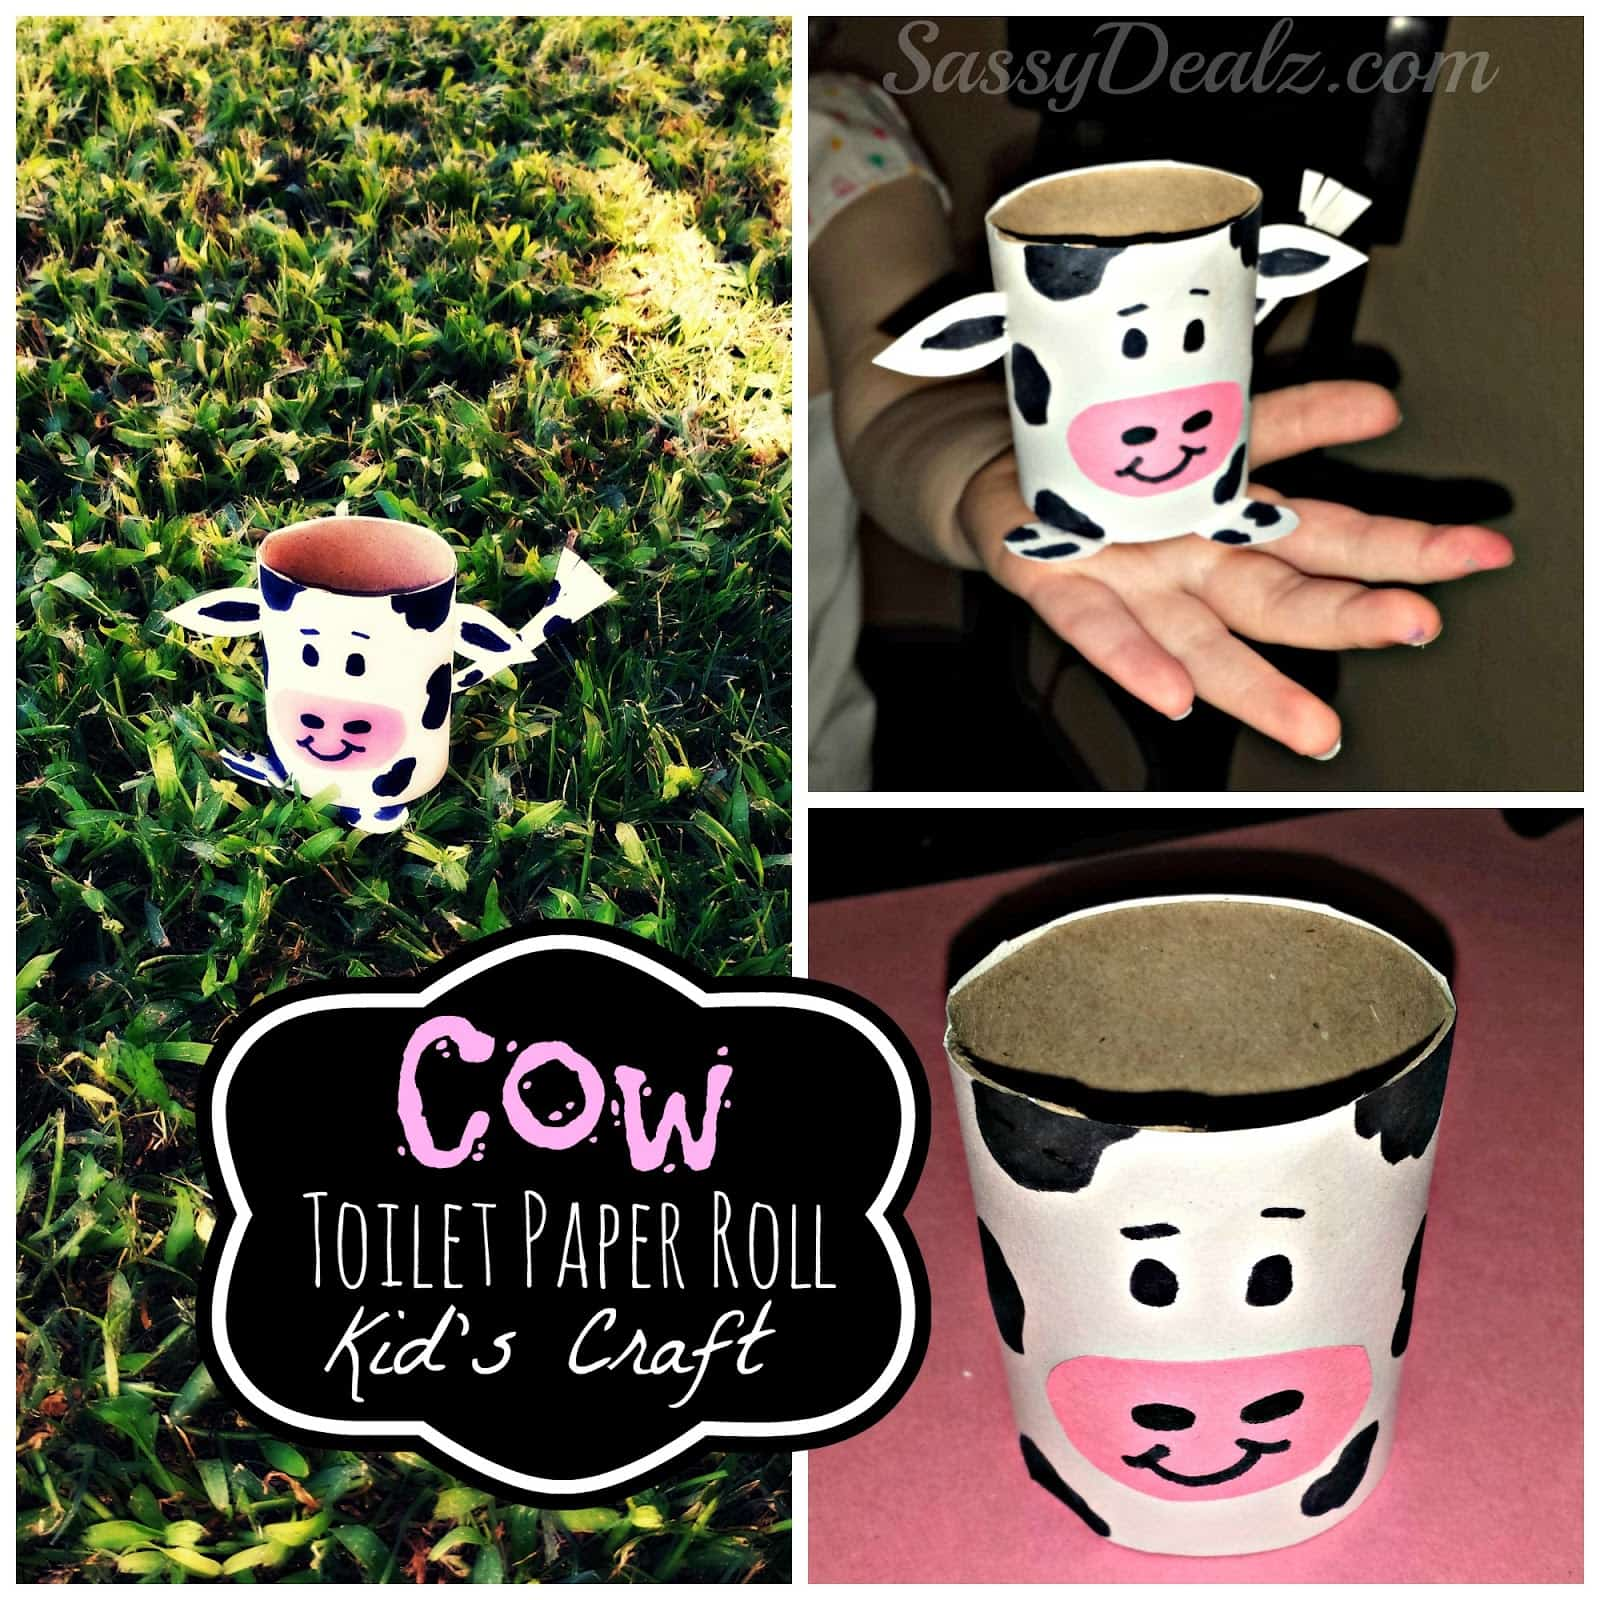 Cow toilet paper roll kids' craft